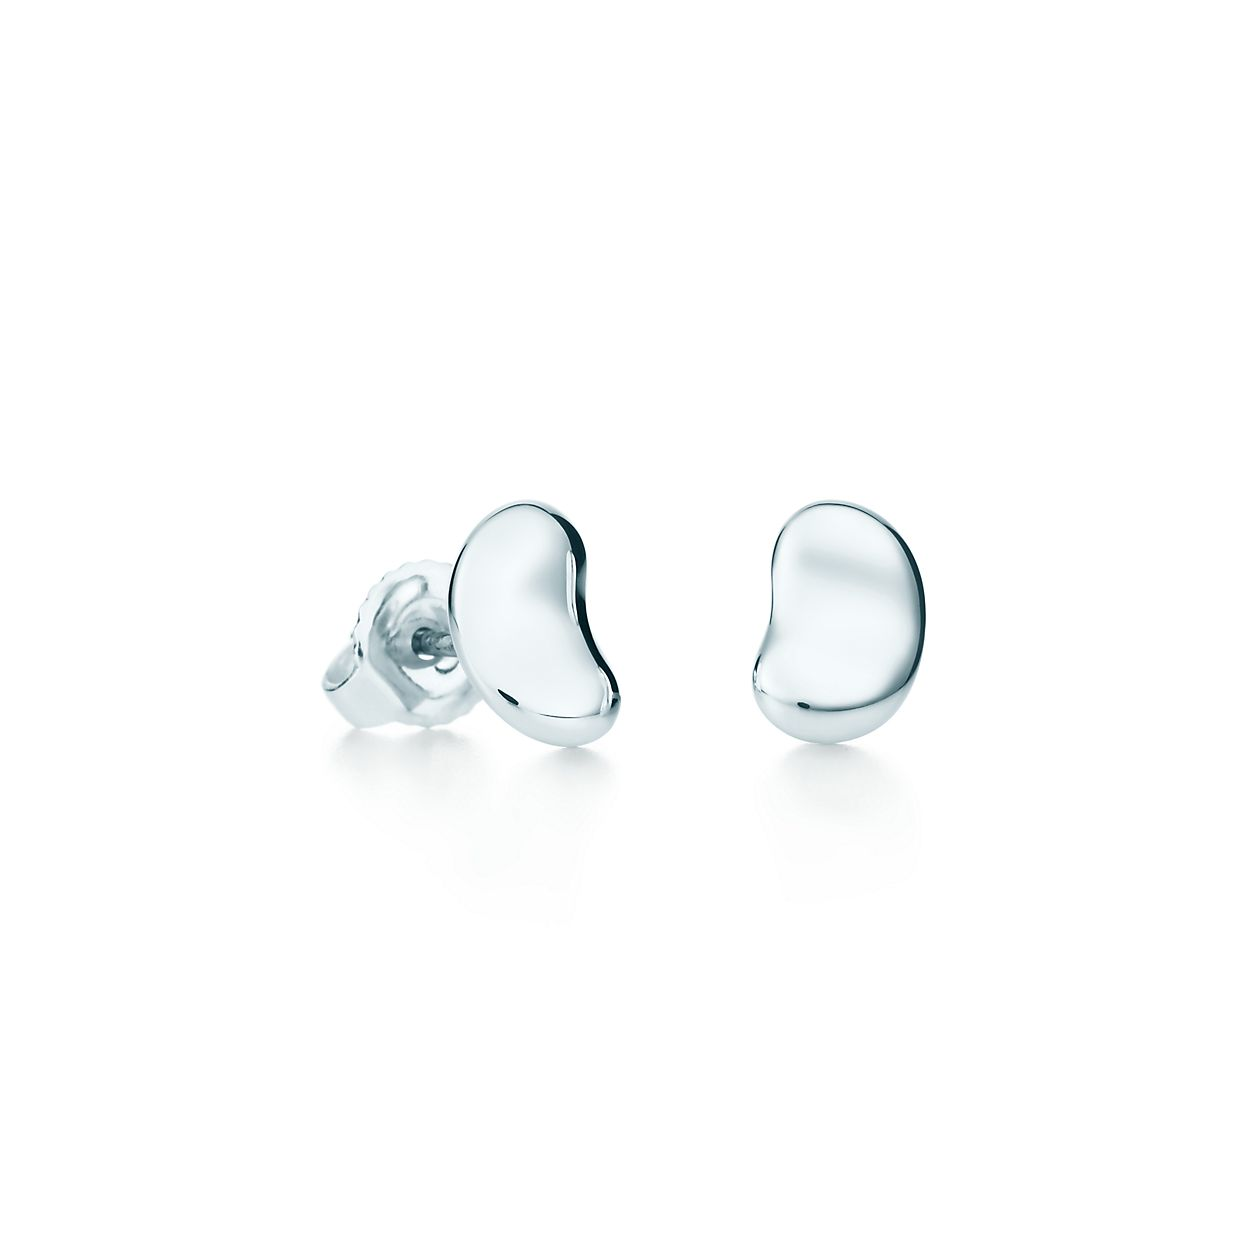 Elsa Peretti Bean Design Earrings